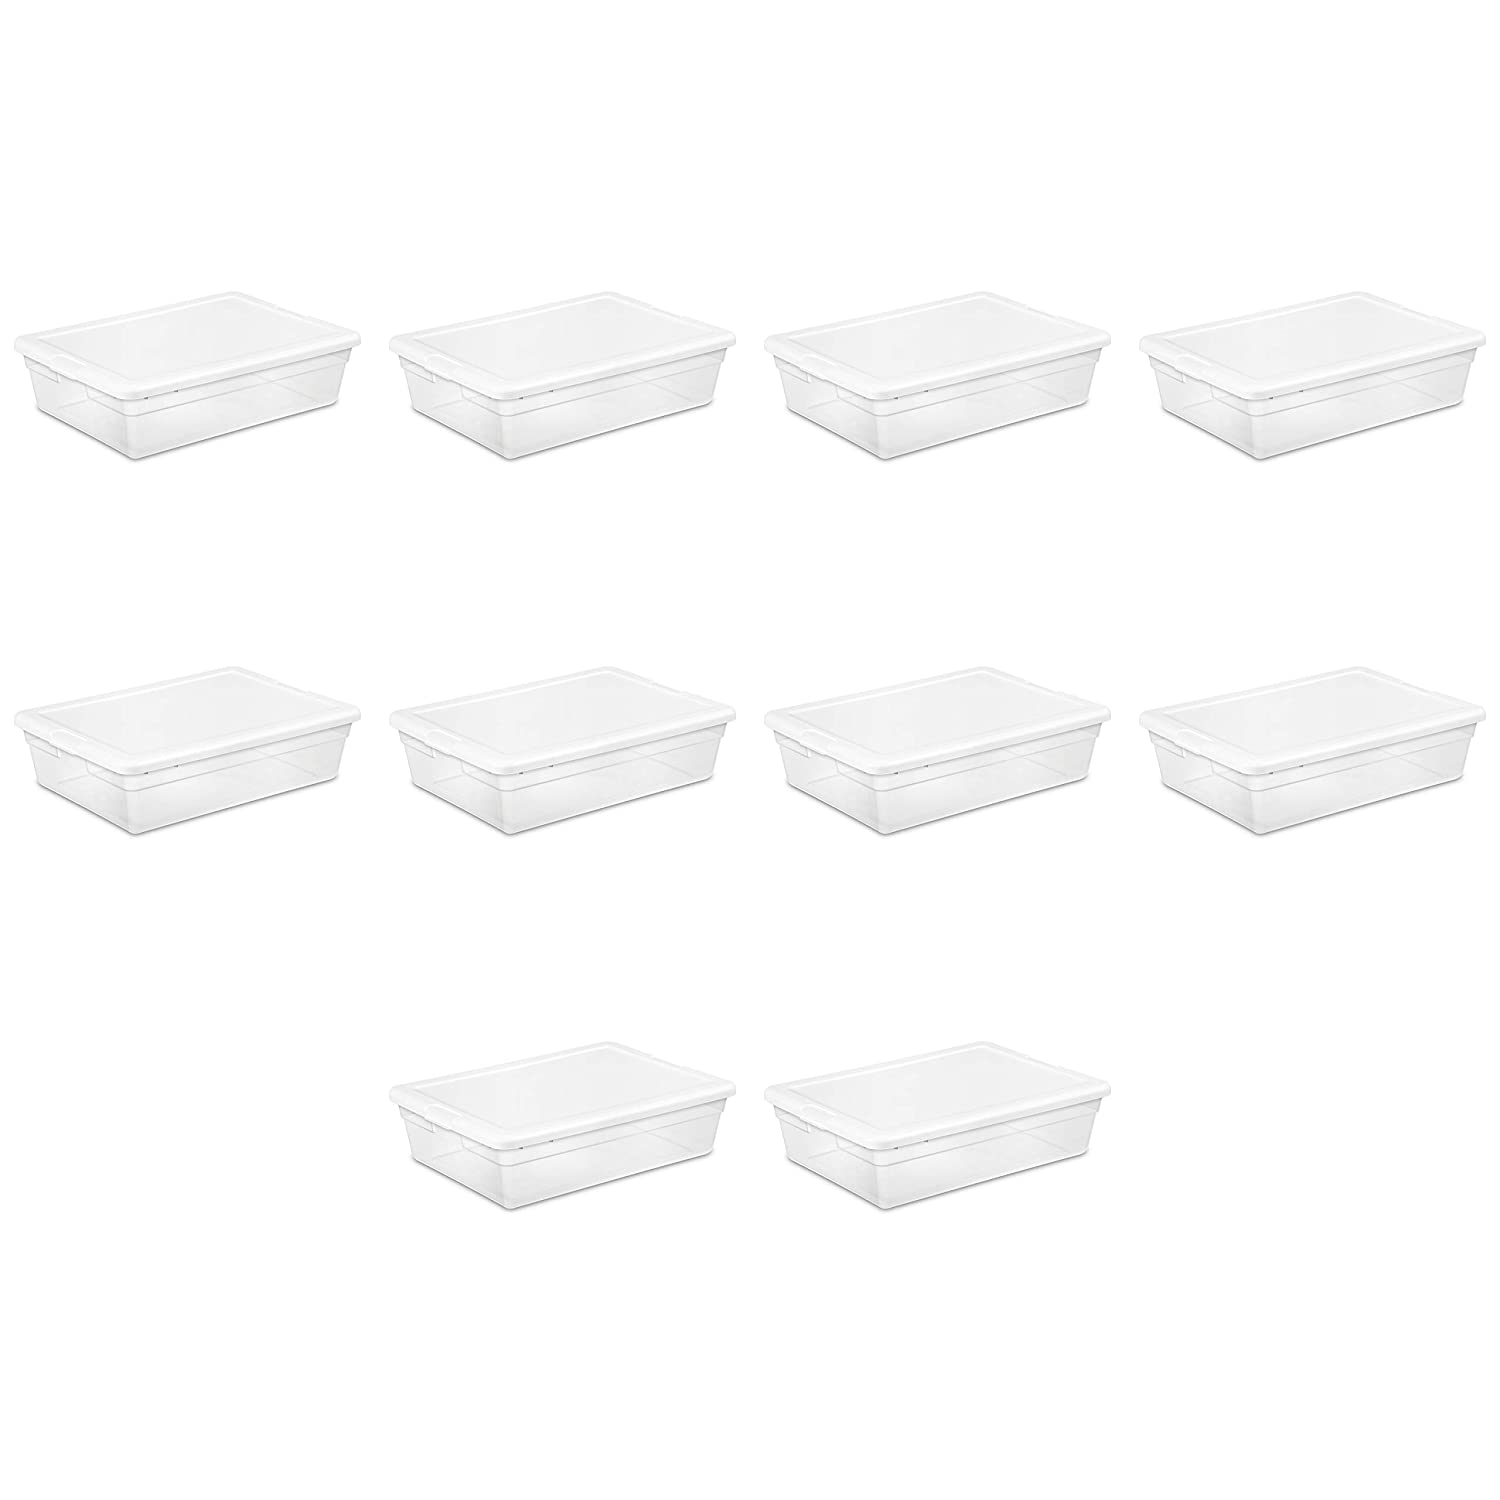 Sterilite 16558010 28 Quart/ 27 Liter Storage Box, White Lid w/ Clear Base, 10-Pack